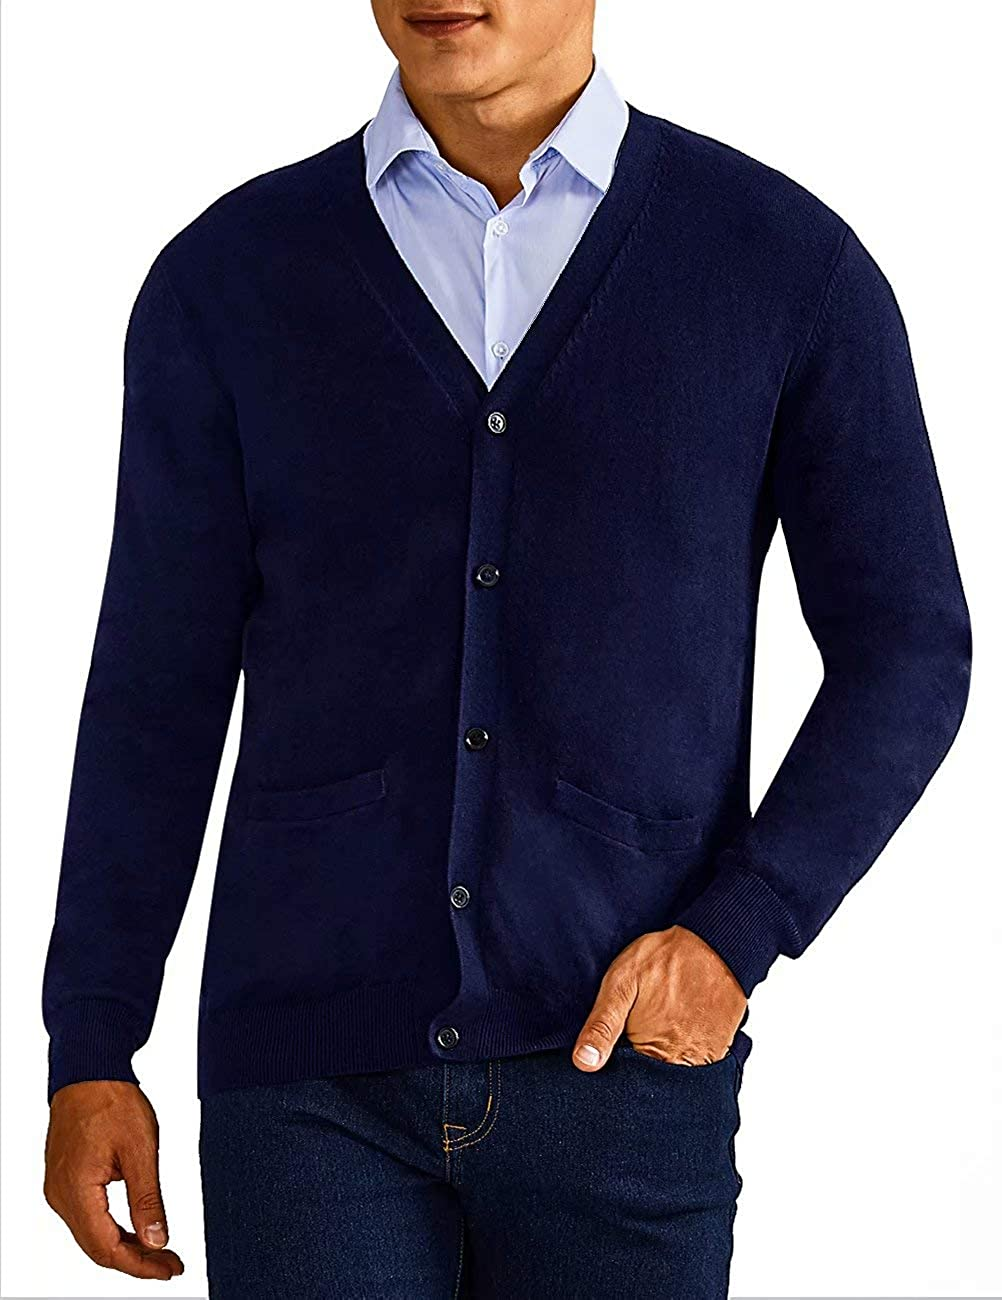 QUALFORT Mens Cardigan Sweater 100/% Cotton Pockets Casual Slim Fit V-Neck Knitted Sweaters Button up